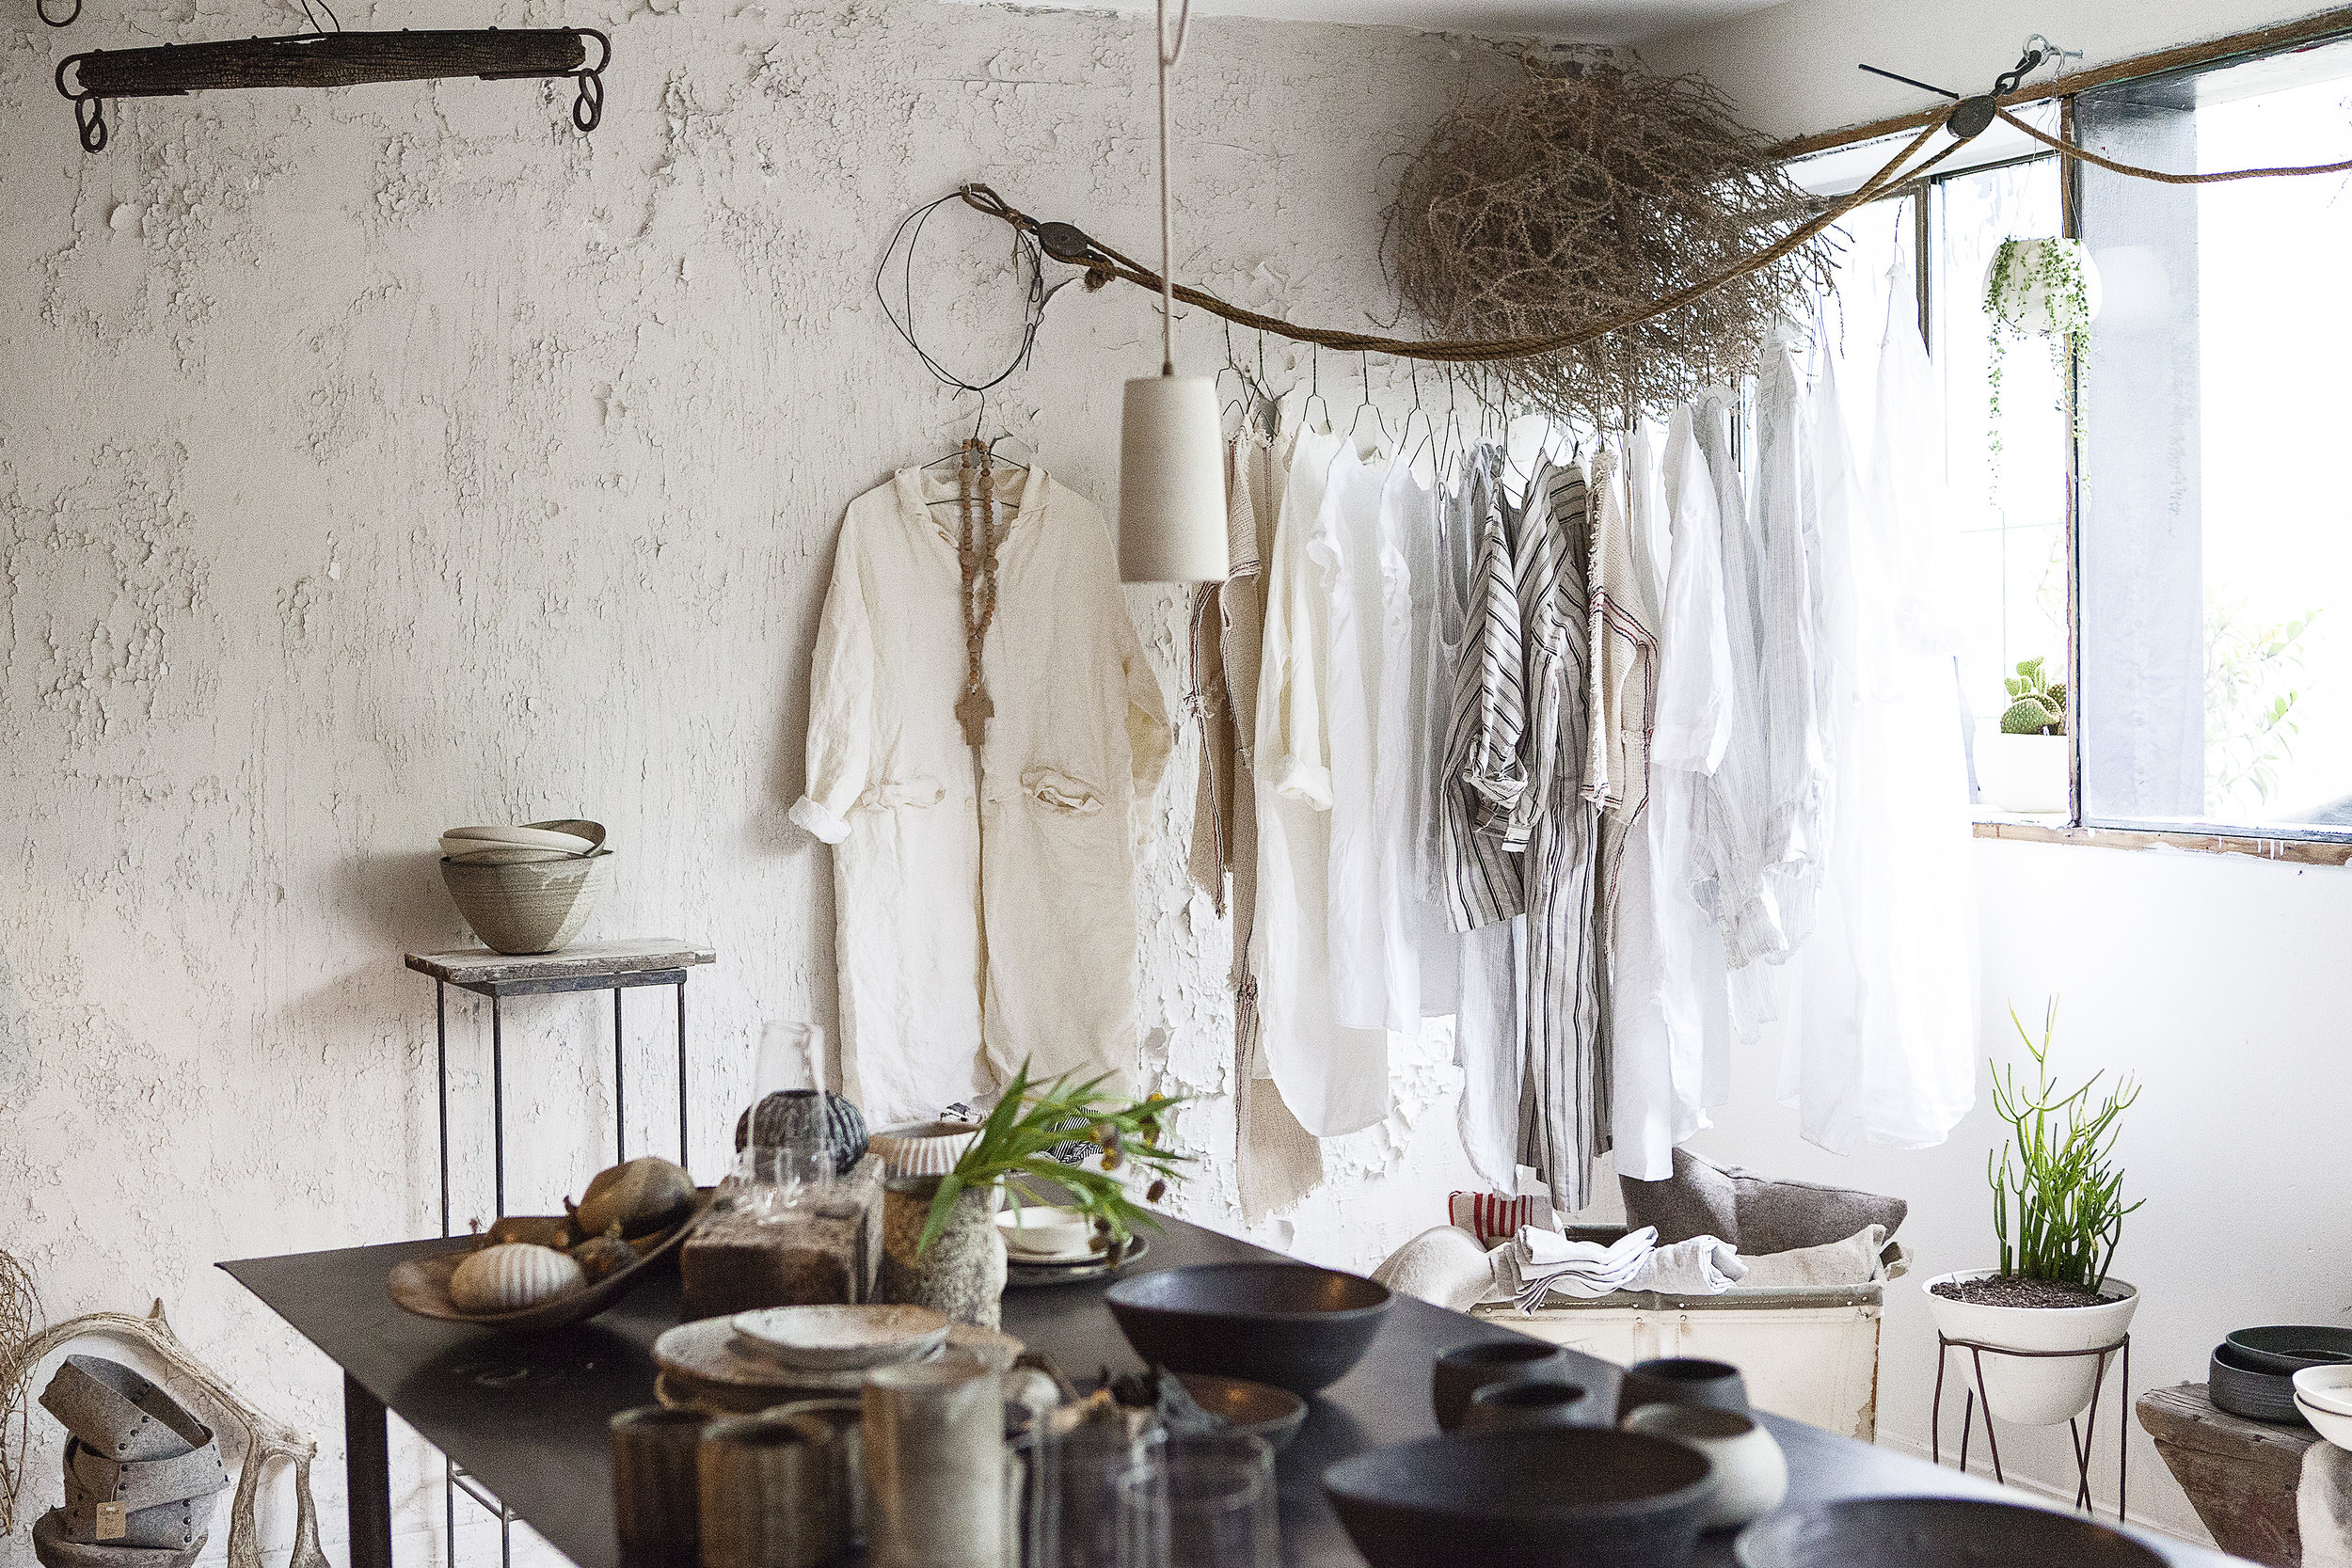 Atelier St. George. Photography by Issha Marie, c/o Atelier St. George